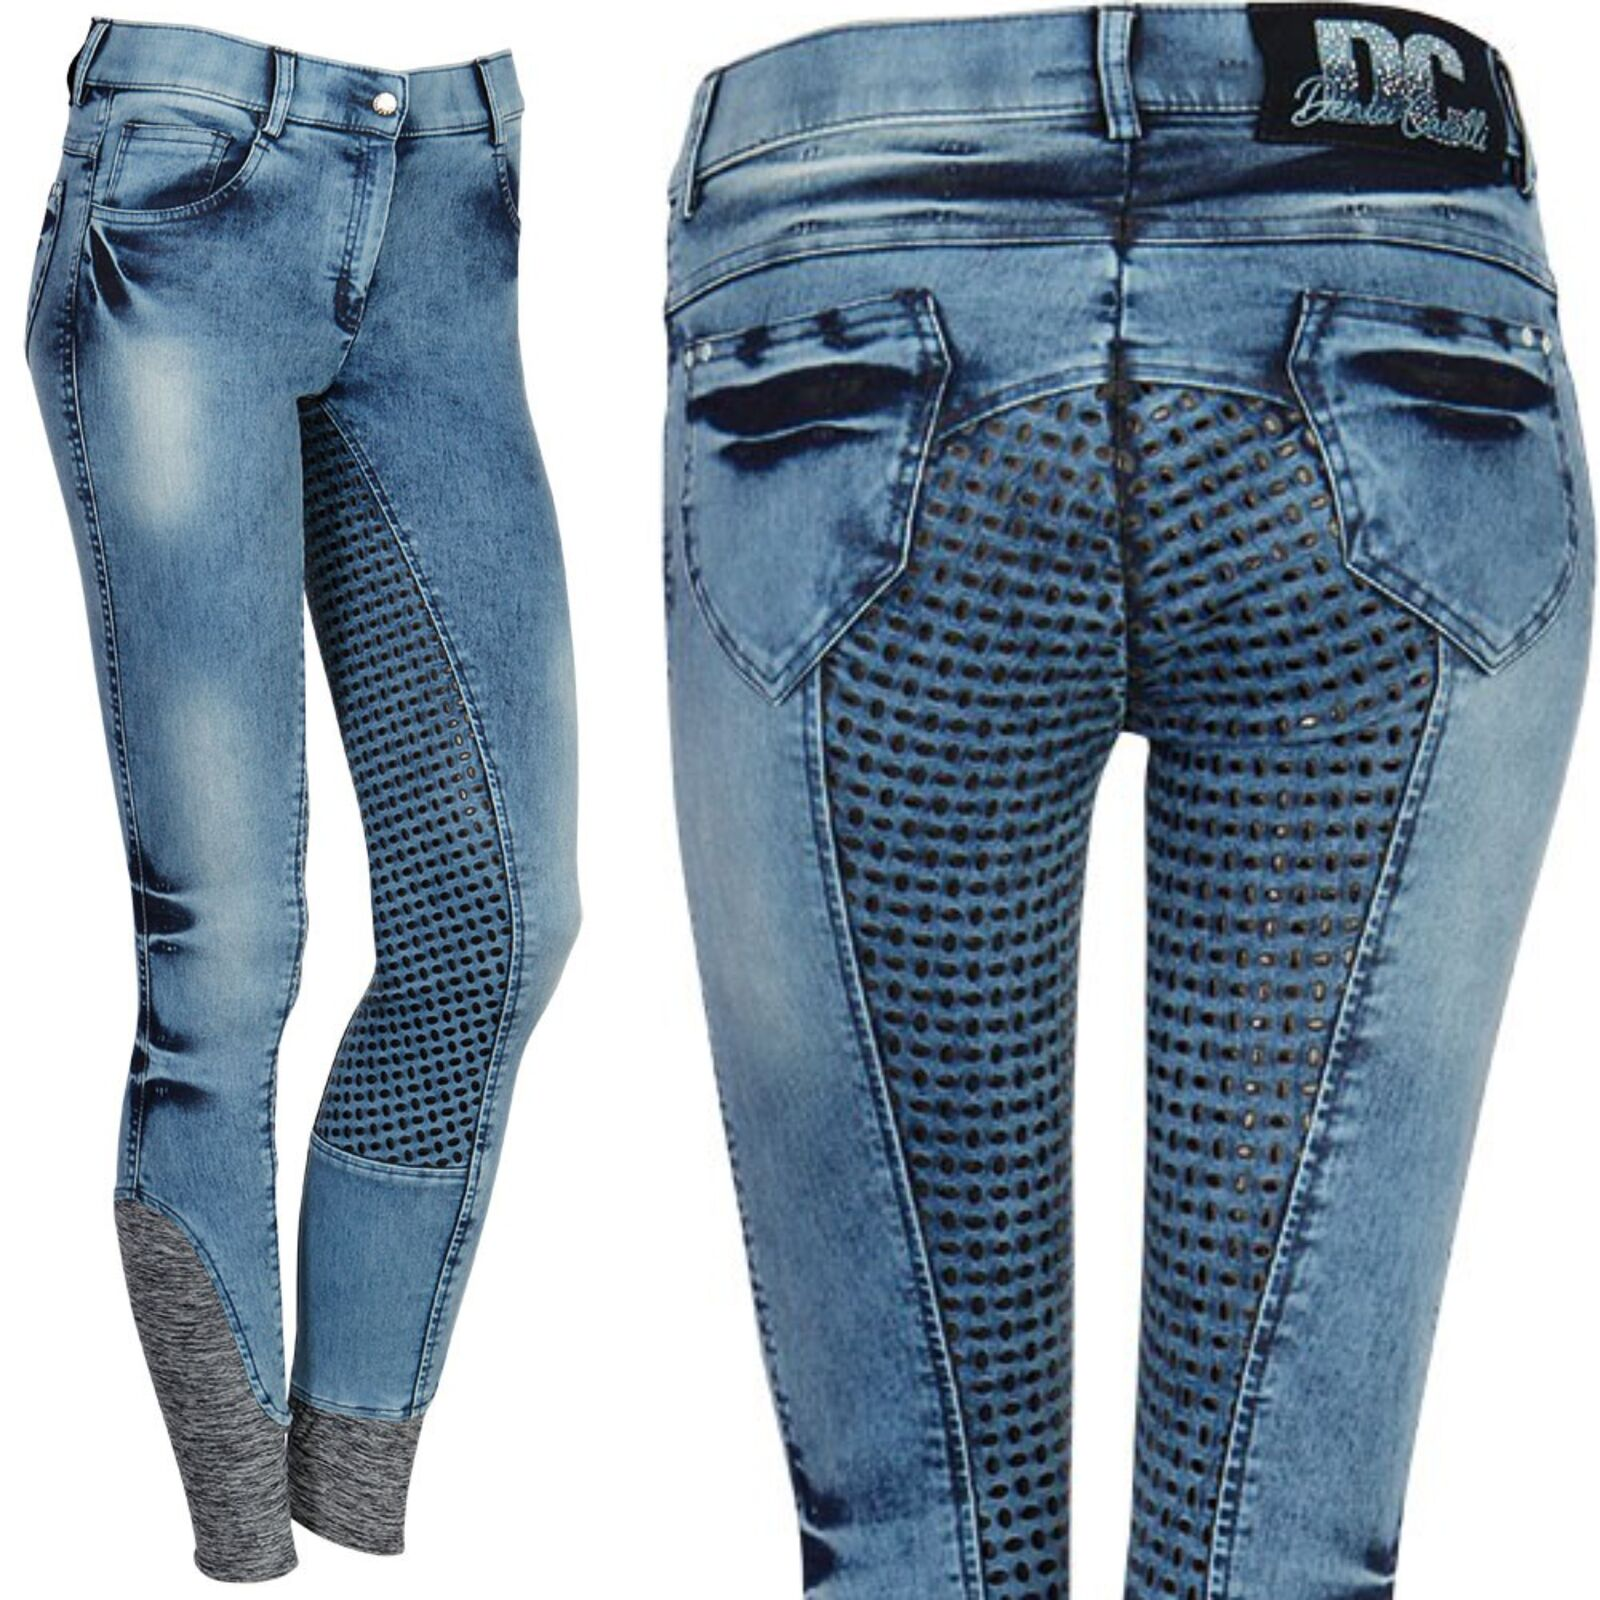 Harry's Horse Riding broek denici Cavalli Denim Full Grip Silicon Full Trim